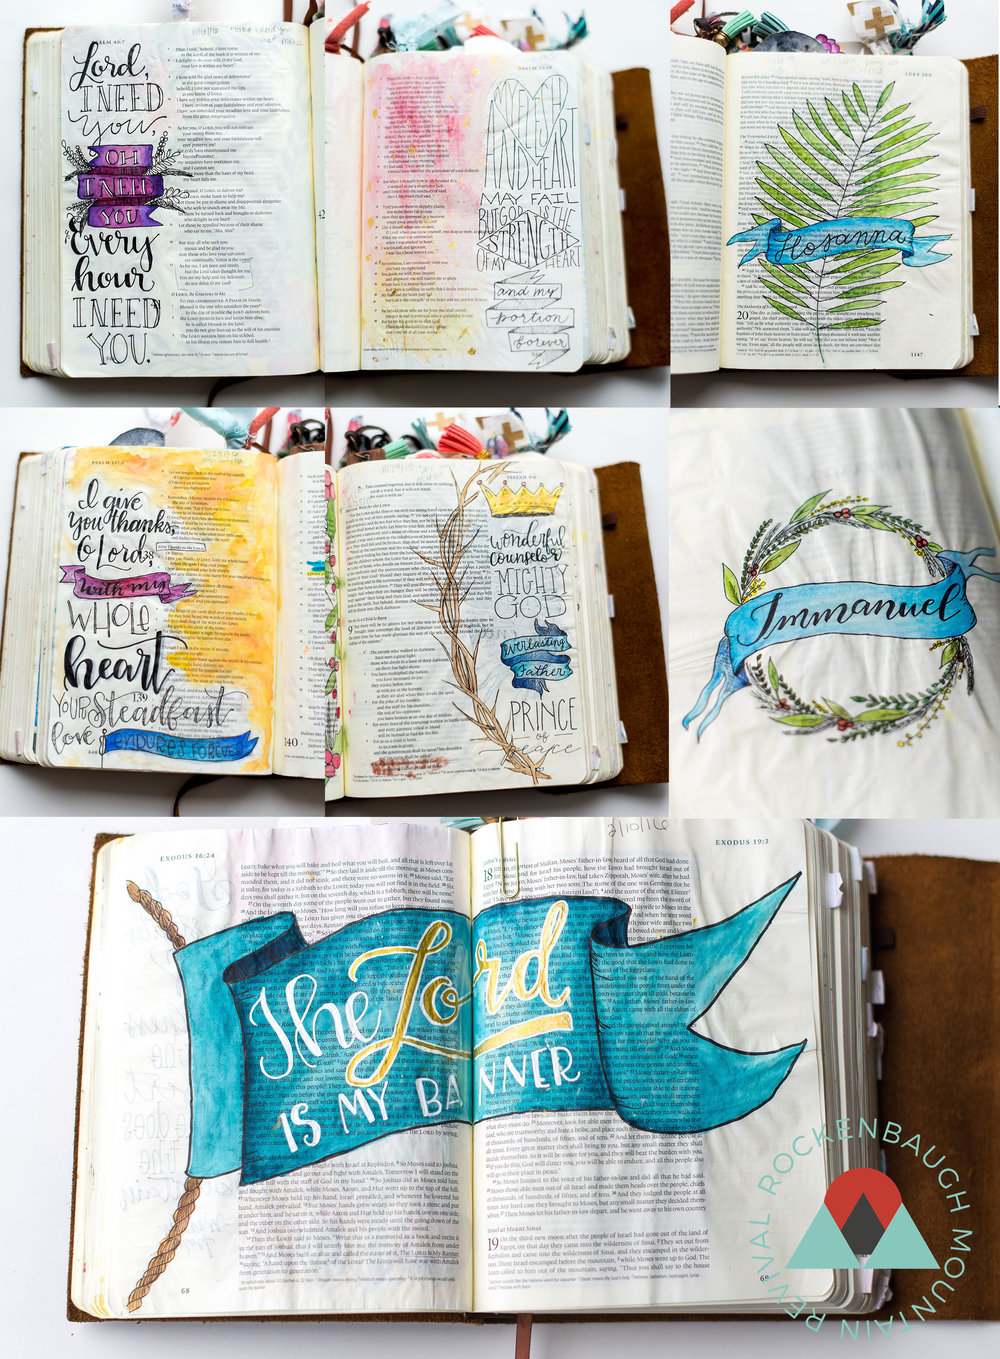 If you're new to Bible journaling or just looking to expand your drawing skills, in this post, you will learn how to draw 5 (super simple) banners to add to your bible journaling pages! It includes a video, examples, and also a FREE printable practice sheet!